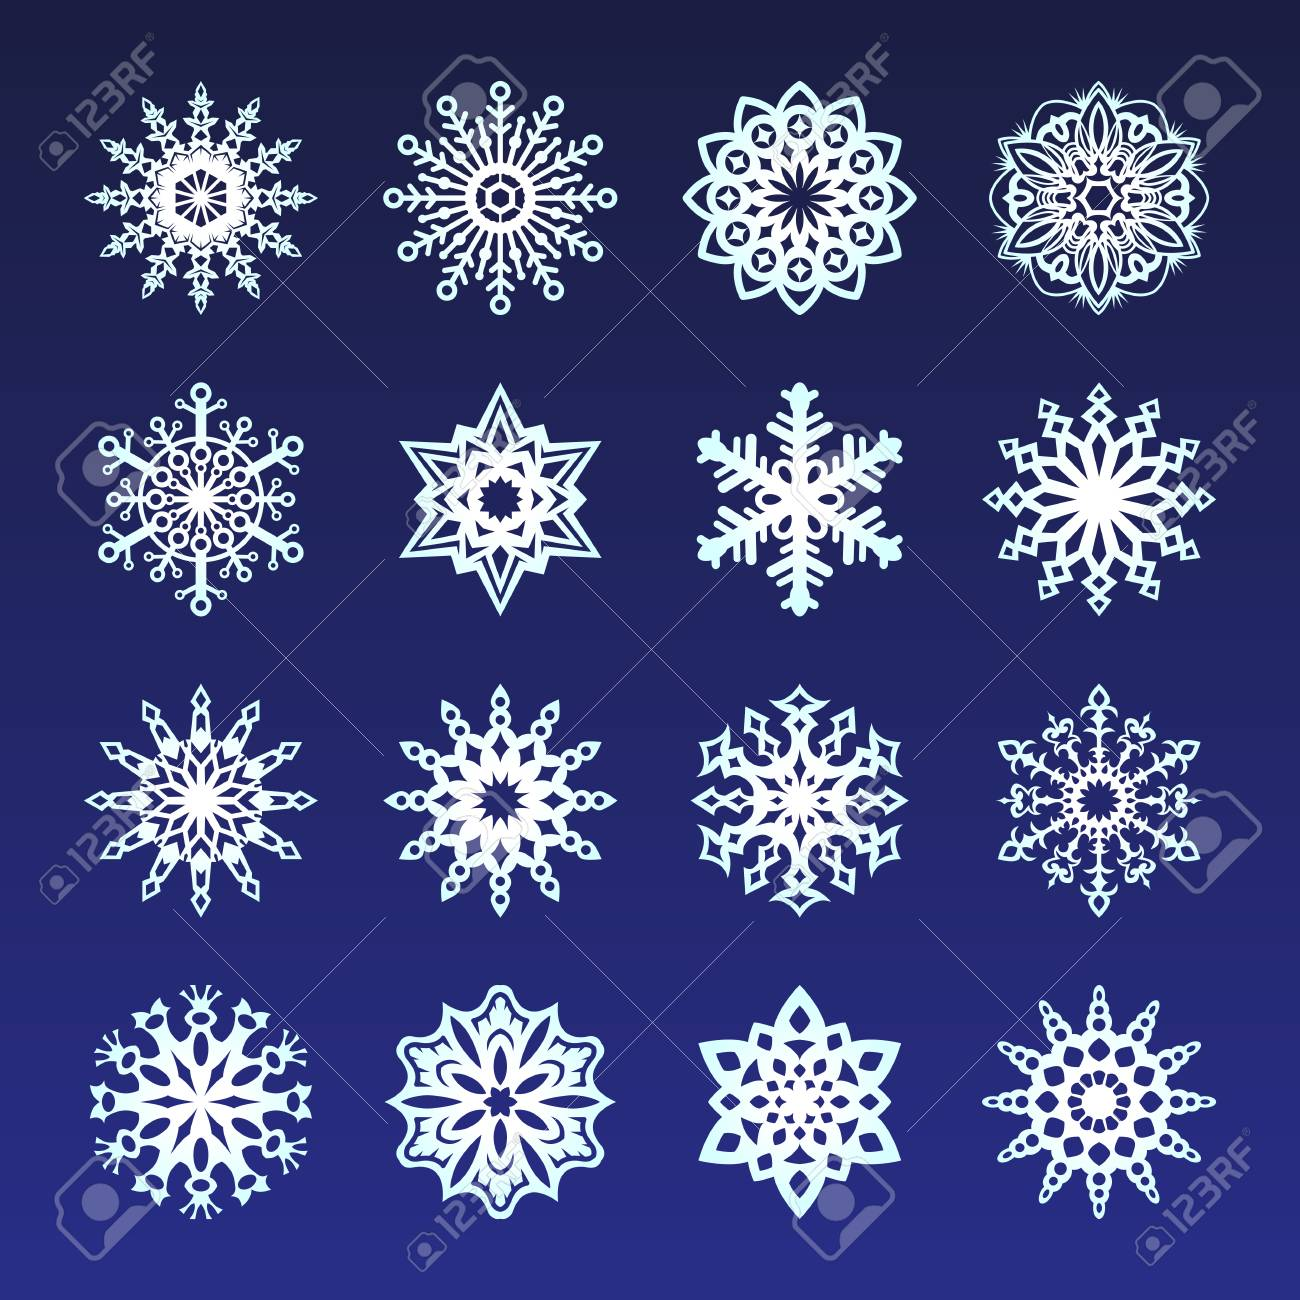 Separate Snowflakes Doodles Icon White Vector Rustic Christmas Clipart New Year Snow Crystal Illustration In Flat